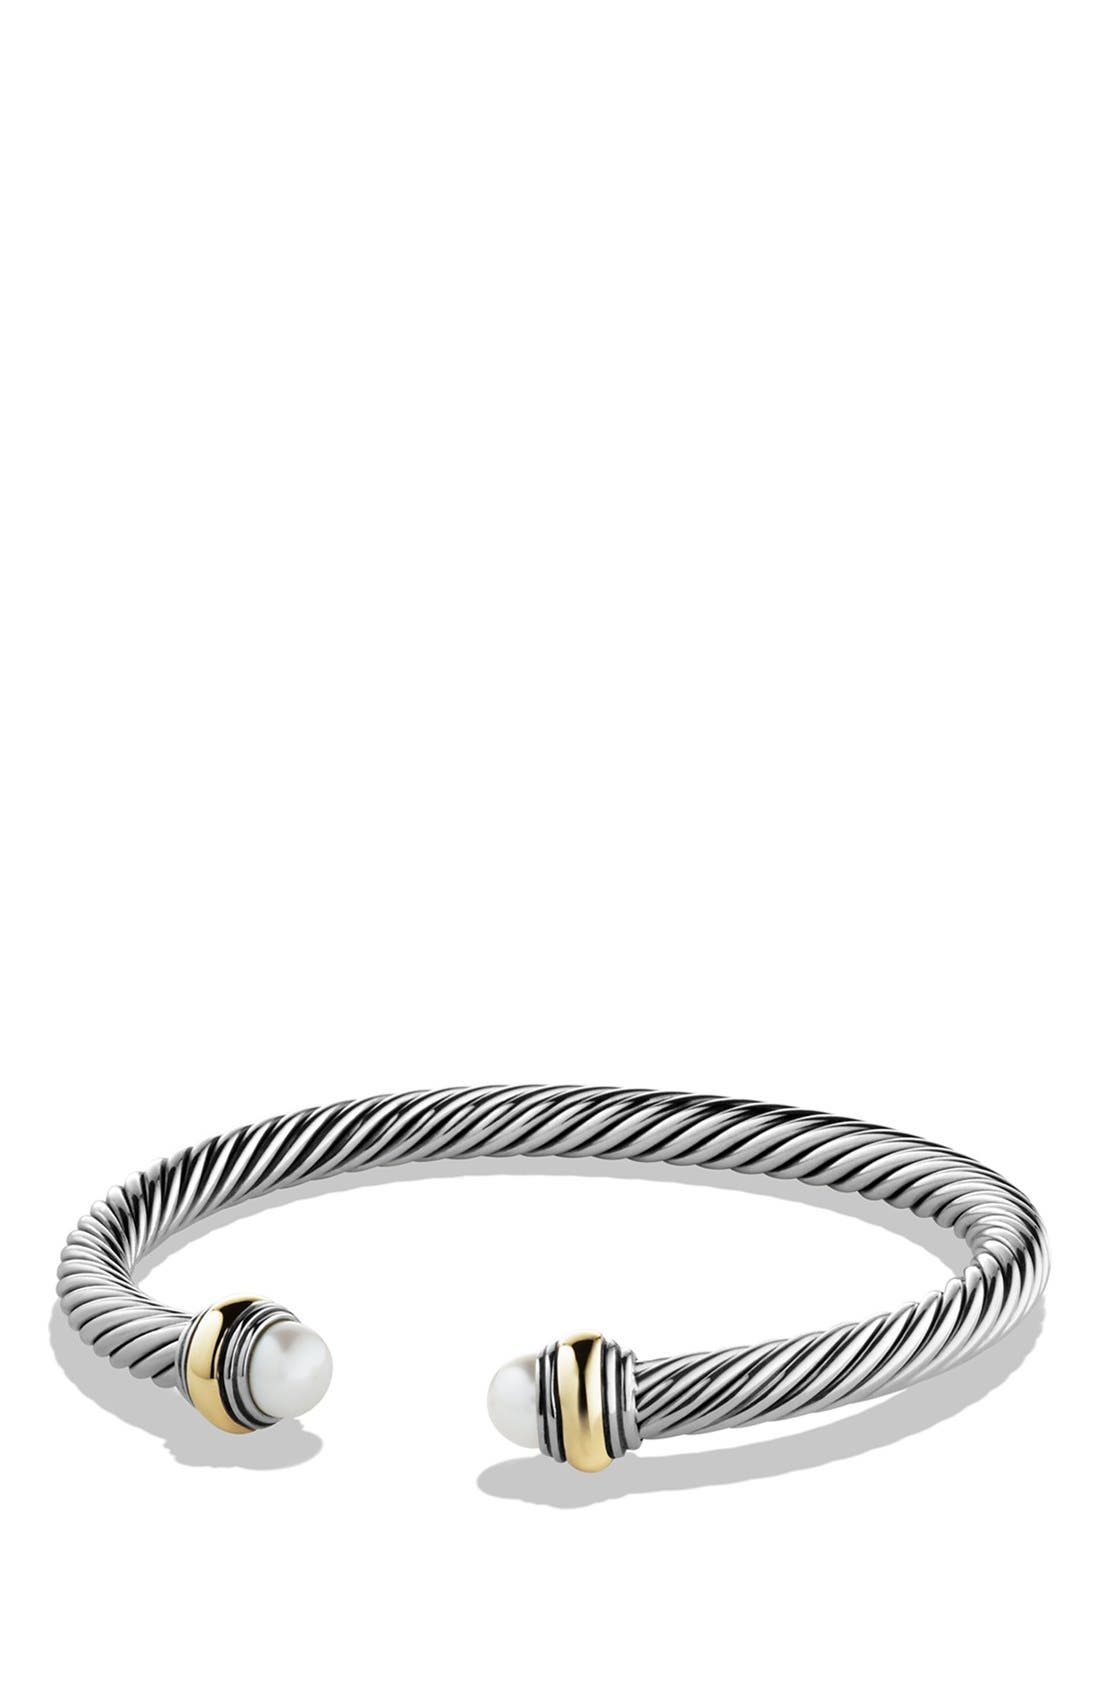 Alternate Image 1 Selected - David Yurman 'Cable Classic' Bracelet with Gold